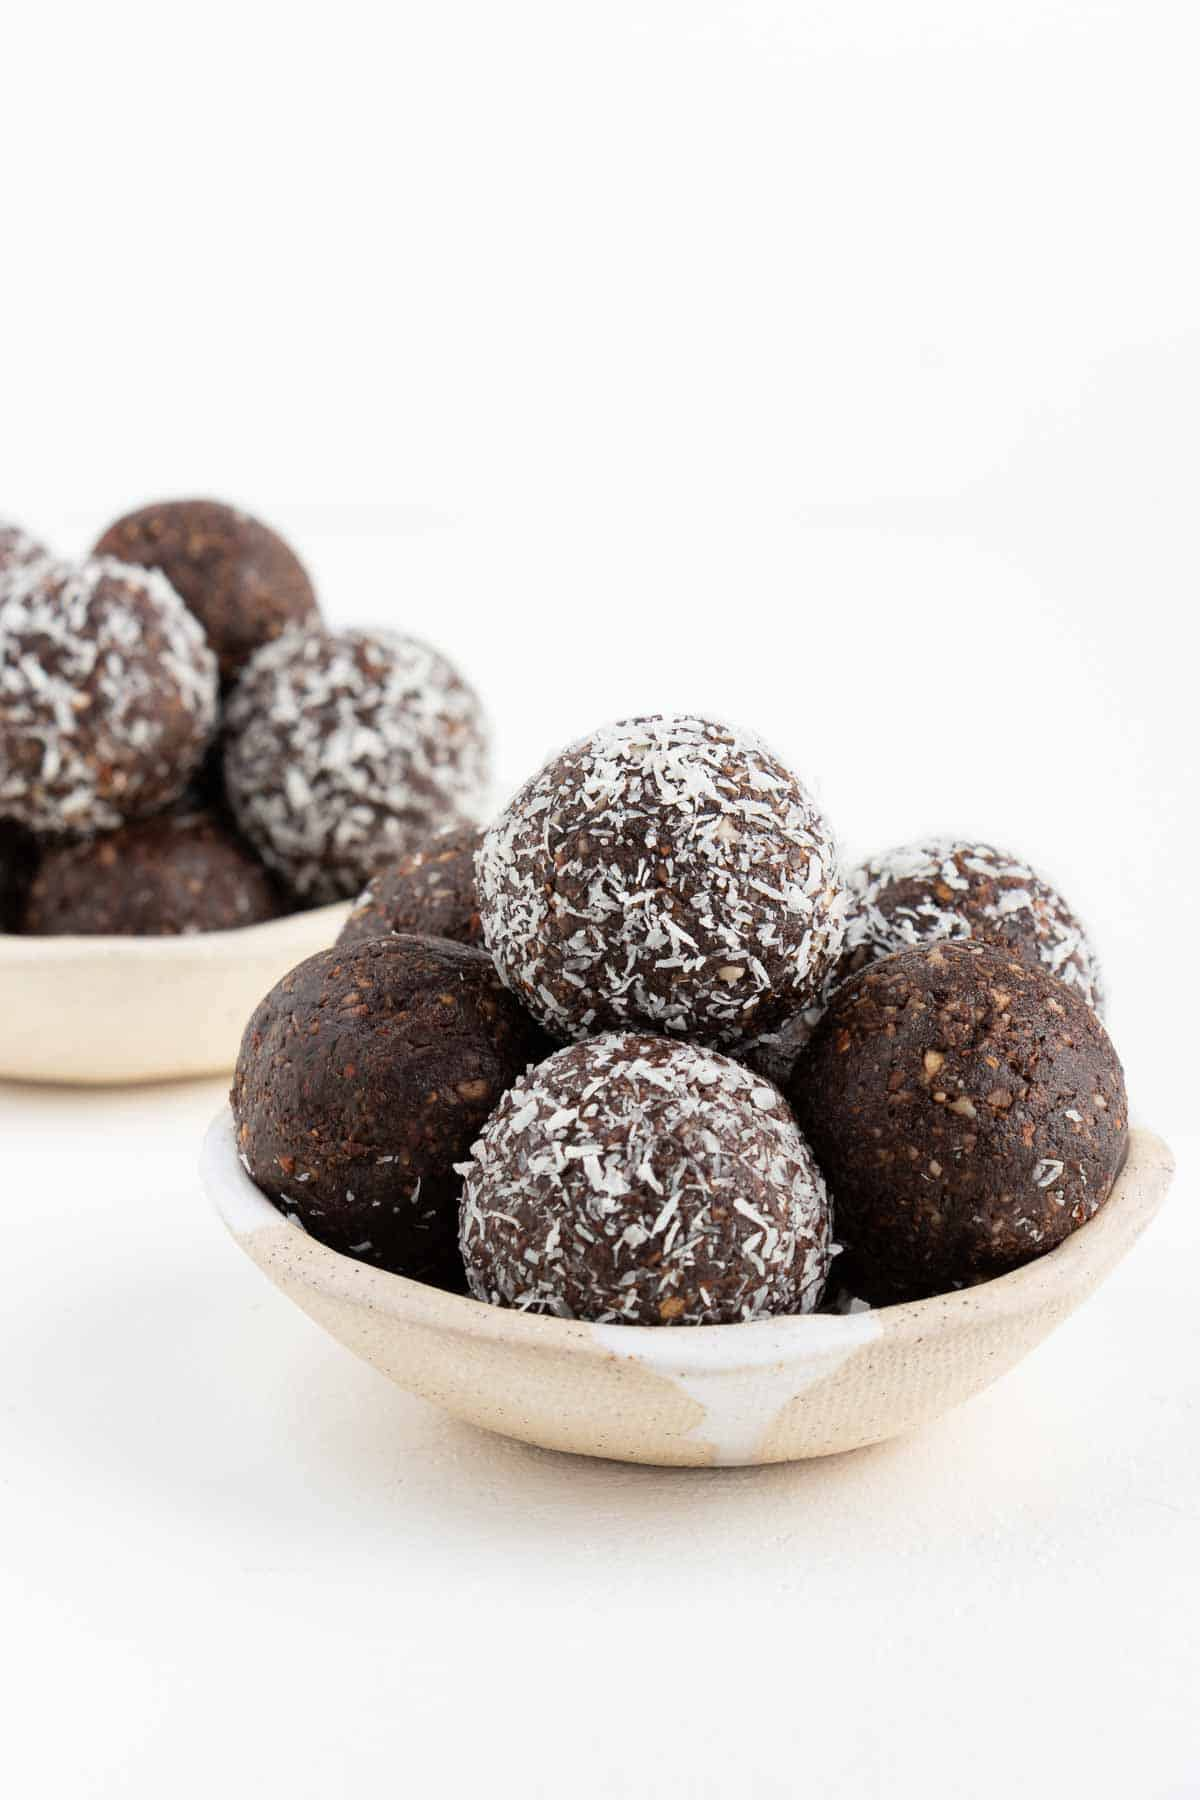 two stacks of coconut chocolate energy balls inside ceramic bowls